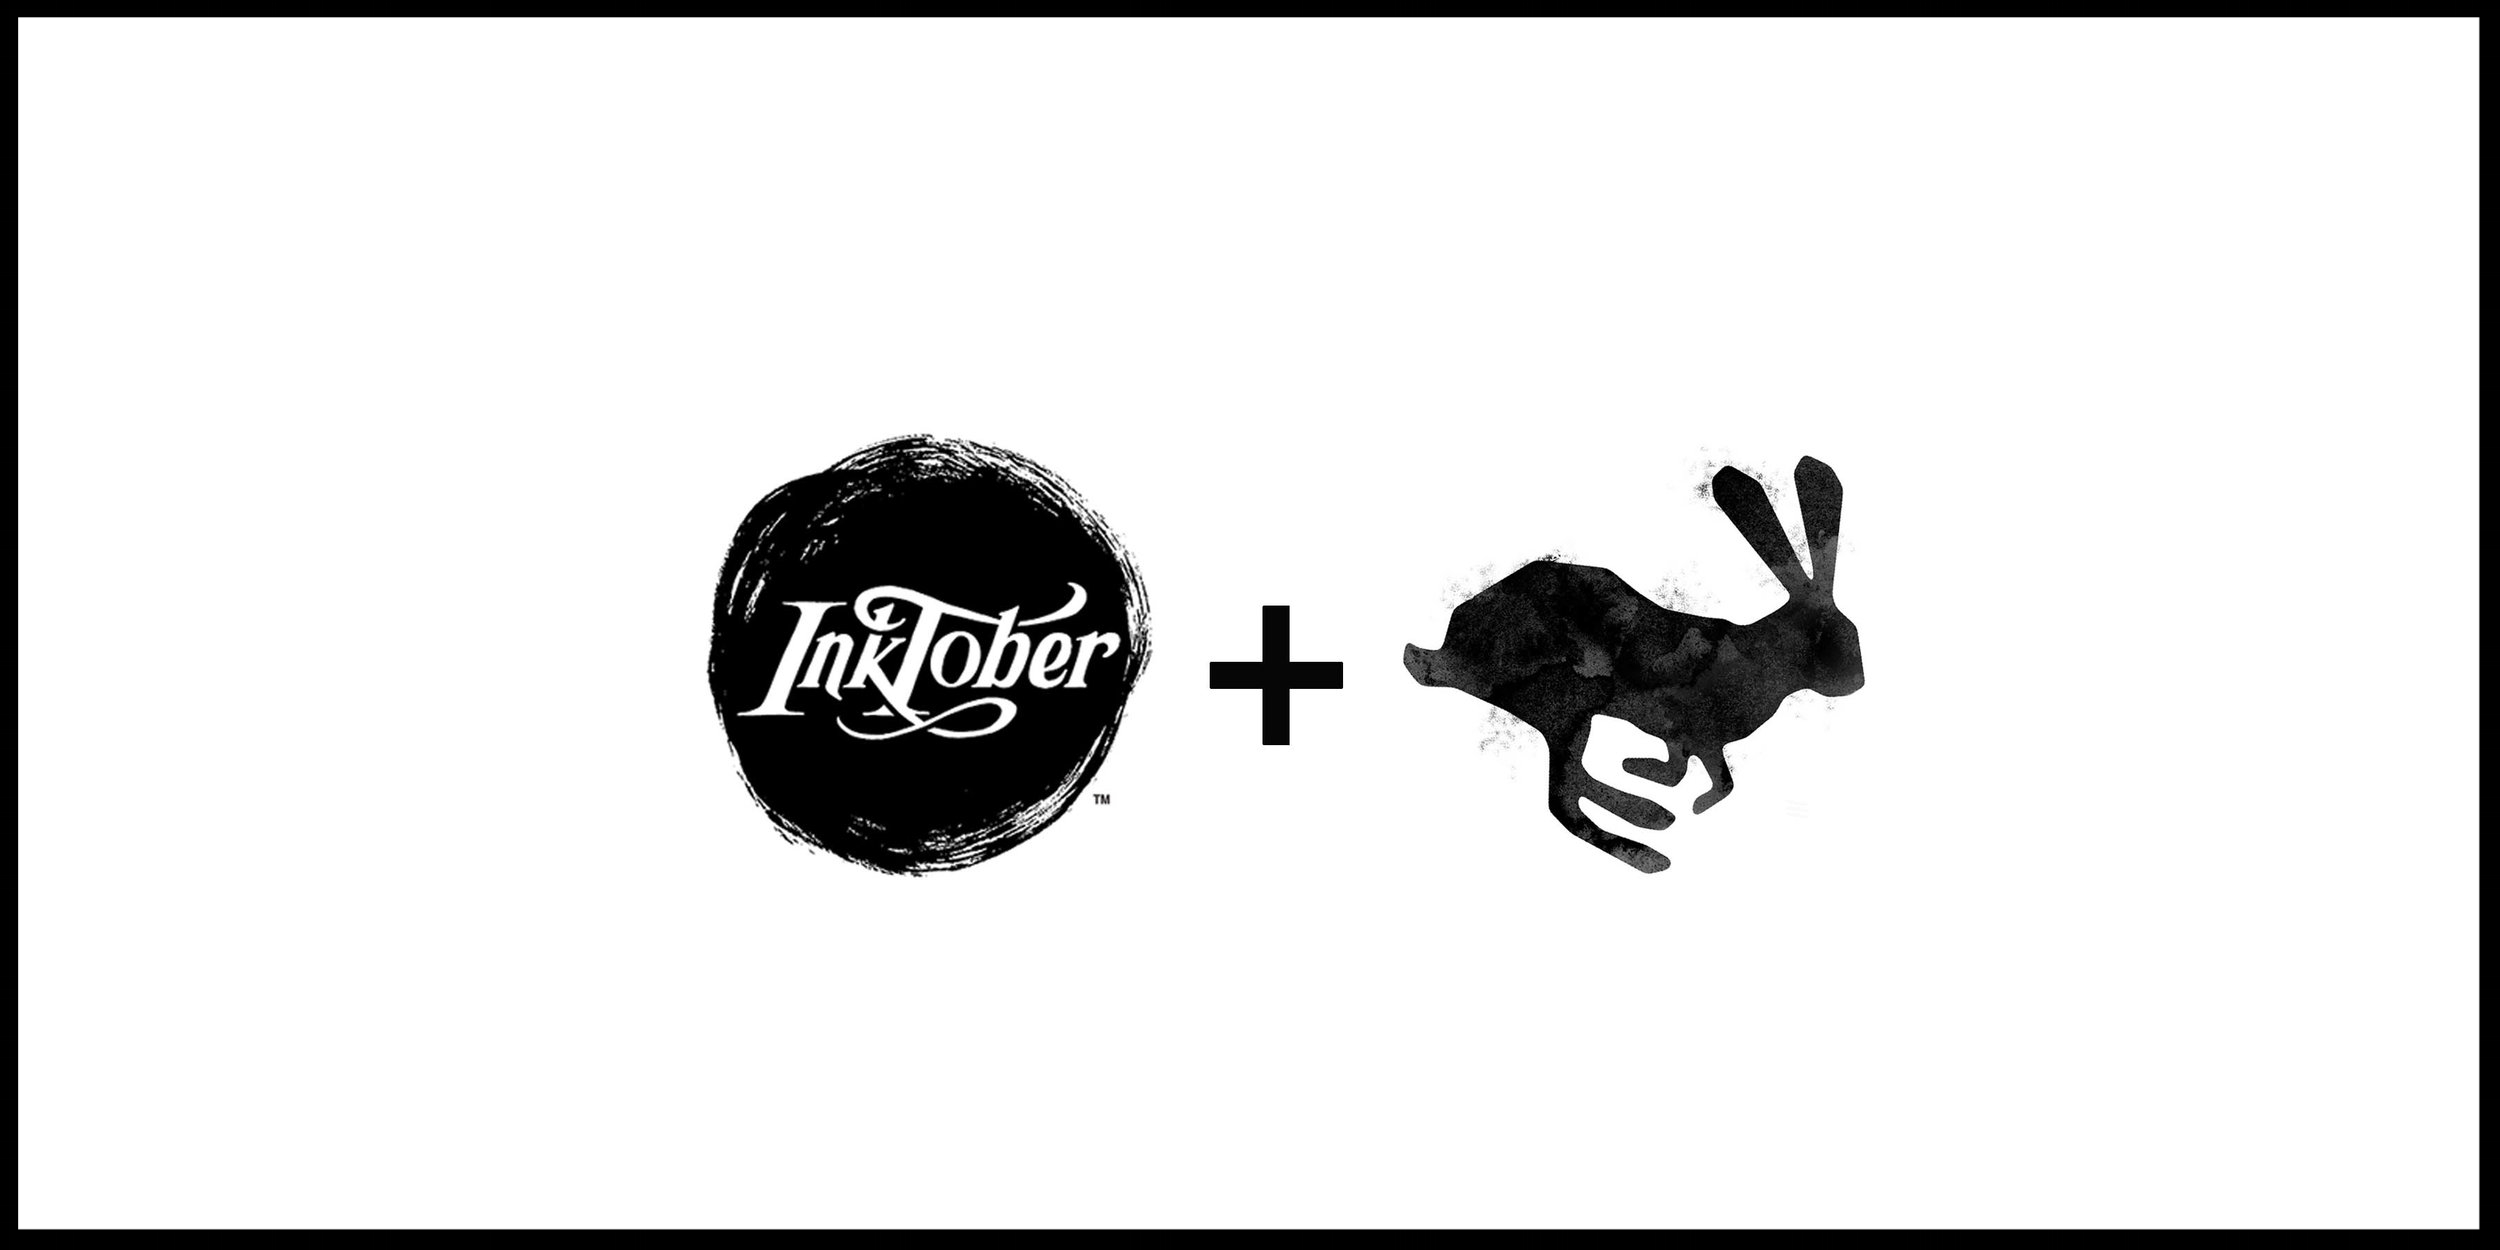 PS - We are teaming up with Inktober to offer a free trial of our video subscription! Get some ink knowledge and see what SVSLearn is about : )